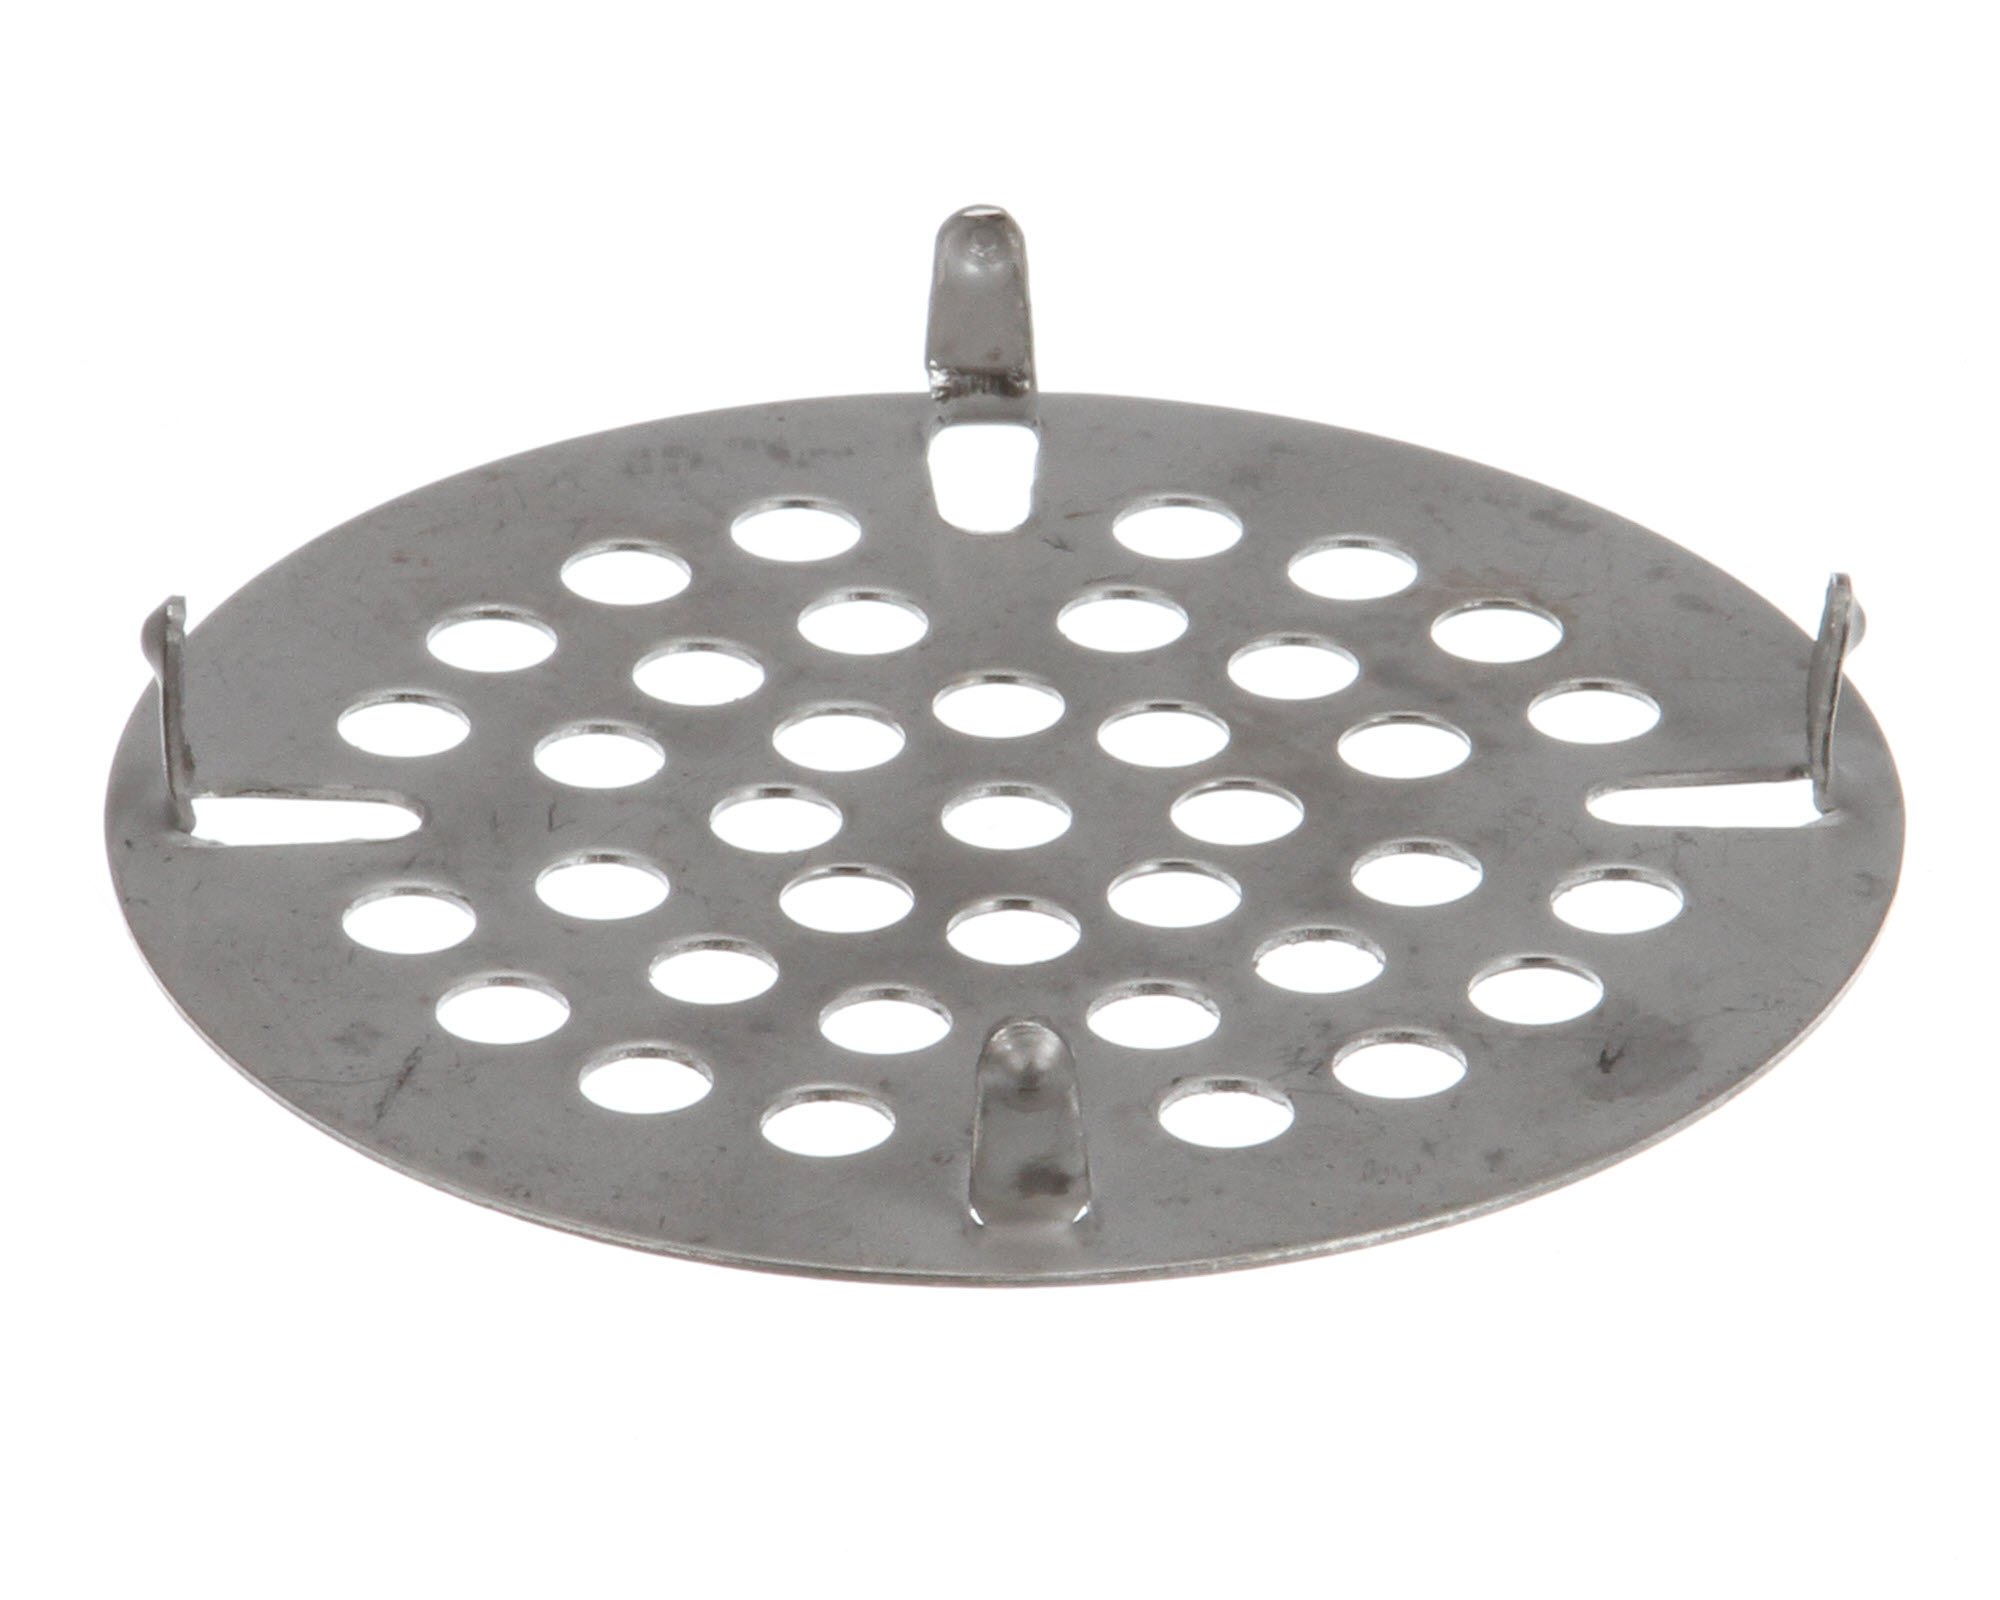 Component Hardware D10-X014 Flat Strainer, Stainless Steel by Component Hardware (Image #1)